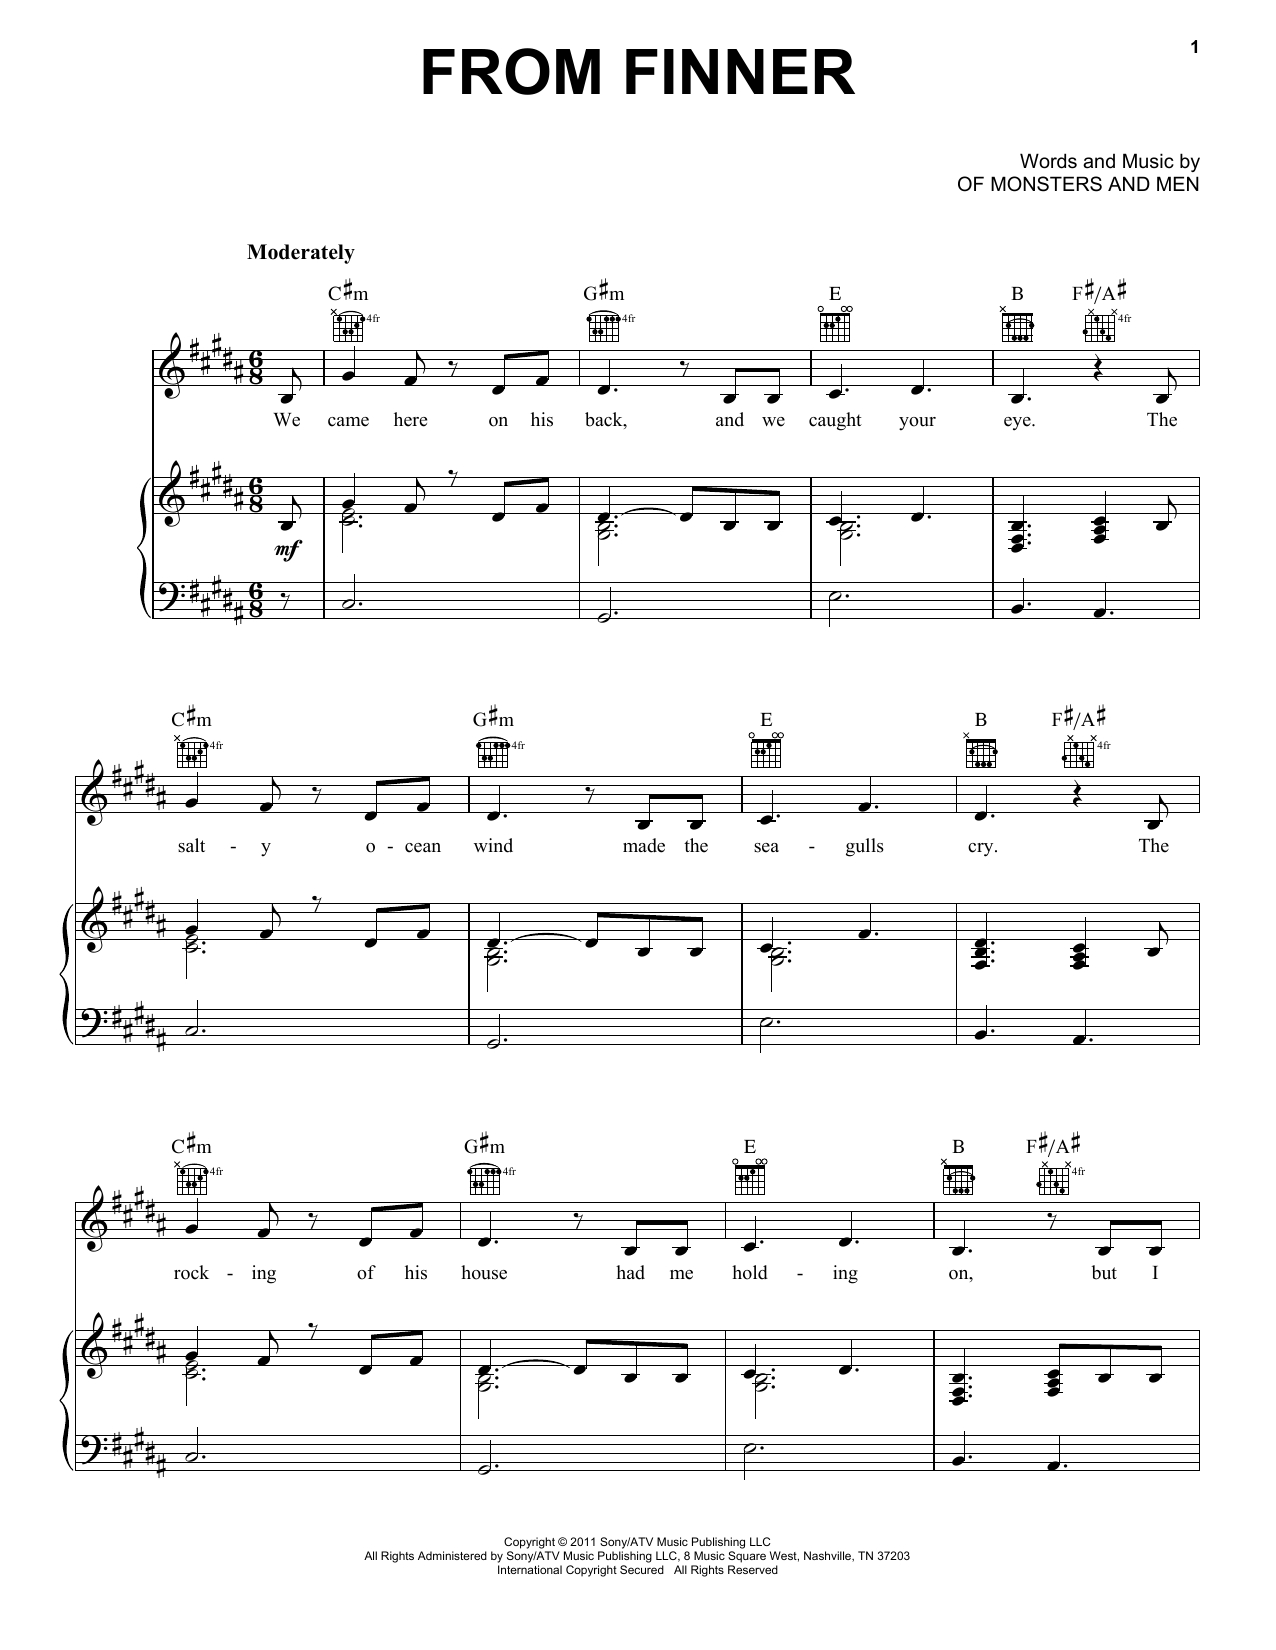 Dirty Paws Chords Sheet Music Digital Files To Print Licensed Of Monsters And Men